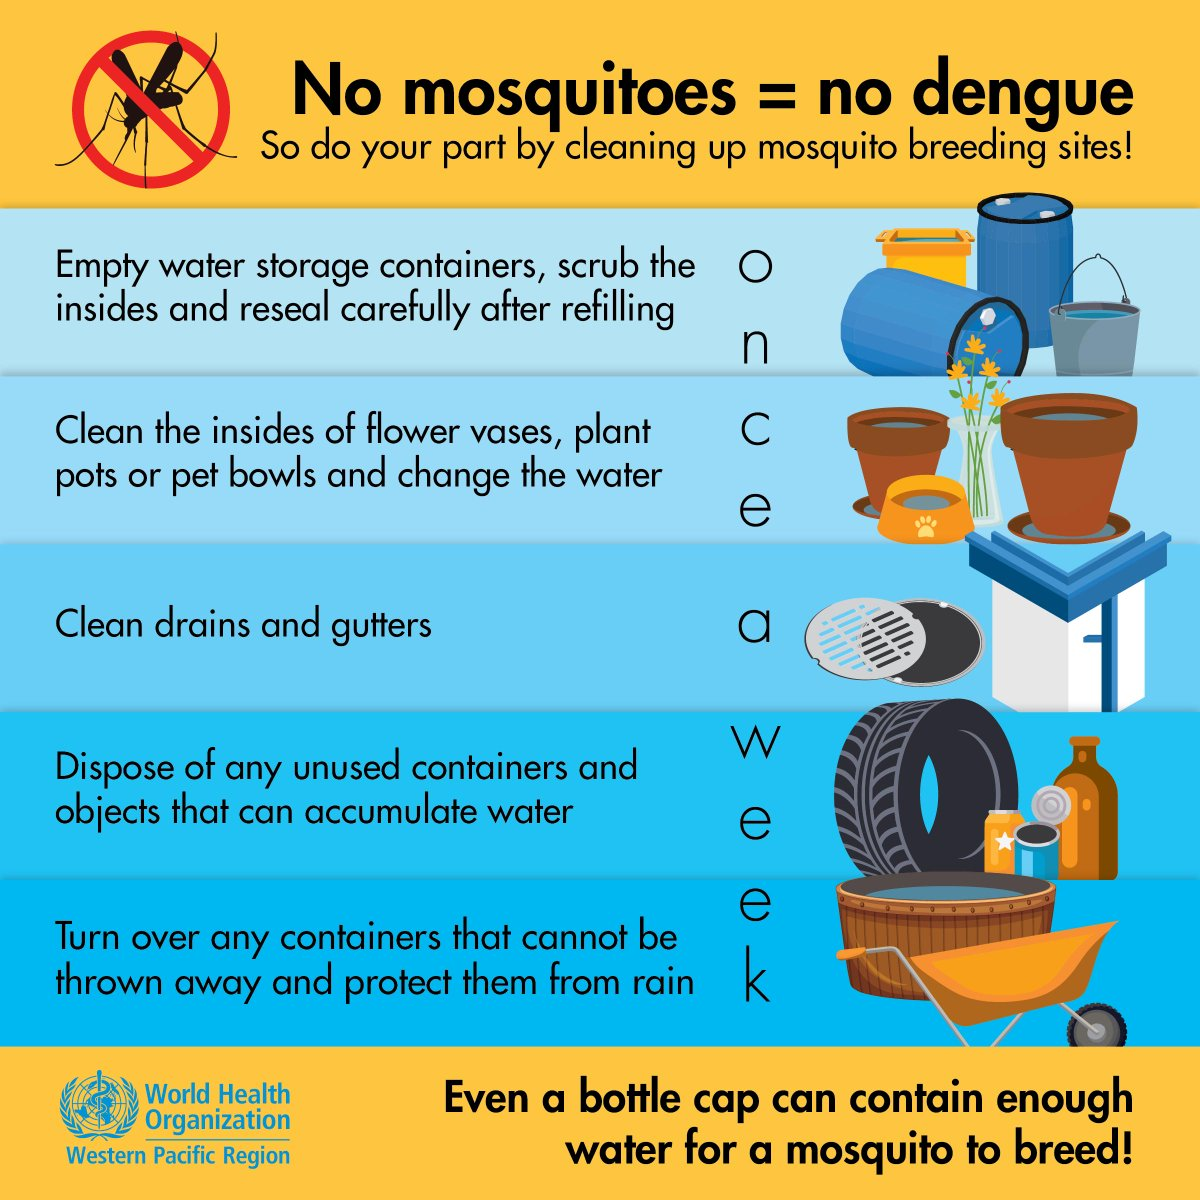 #Dengue mosquitoes like to breed in containers that collect water, like tyres, bottles, tins and coconut shells. Protect yourself & your family from dengue. Get rid of these objects from around the house and garden. Drain, wash and scrub water storage containers every week.